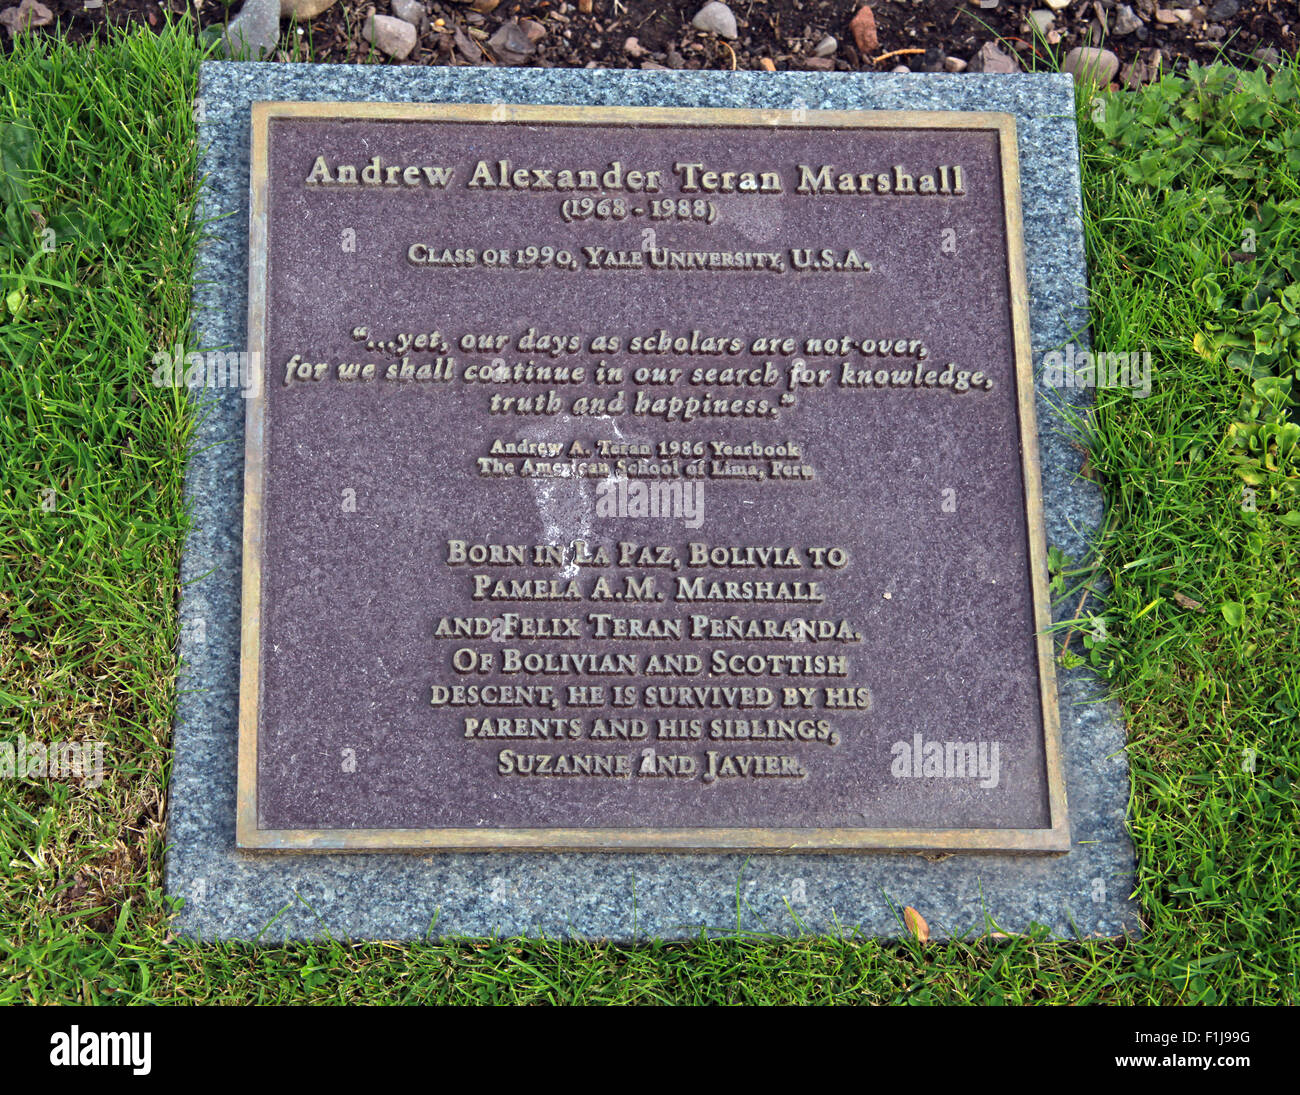 Alexander Teran Marshall,Scotland,Lodge,Visitors,Centre,DLVC,Trust,Lockerbie,Memorial,Remembrance,Scotland,Victims,Pan,Am,PanAm,flight,103,bomb,bombing,terrorist,December,1988,attack,crash,dead,site,21/12/1988,270,victims,Scottish,Town,conspiracy,blast,Tundergarth,Room,garden,of,New York,GoTonySmith,Lodge,Visitors,Centre,DLVC,Trust,Lockerbie,Memorial,Scotland,Victims,Pan,Am,PanAm,flight,103,bomb,bombing,terrorist,December,1988,attack,crash,dead,site,21/12/1988,270,victims,Scottish,Town,conspiracy,blast,Tundergarth,Room,garden,of,Dryfesdale,Cemetery,news,Cultural,understanding,remembering,innocent,transatlantic,Frankfurt,Detroit,Libyan,Libya,Colonel Muammar Gaddafi,civil,case,compensation,terrorism,PA103,30,30years,years,Syracuse,University,SU,family,collections,Story,Archive,Archives,40,35,Timeline,saga,disaster,air,Scholars,program,programs,remembrance,Clipper Maid of the Seas,N739PA,Boeing,727,plane,aircraft,Scotland,UK,United Kingdom,GB,Great Britain,resting,place,Buy Pictures of,Buy Images Of,New York,al megrahi,30 Years